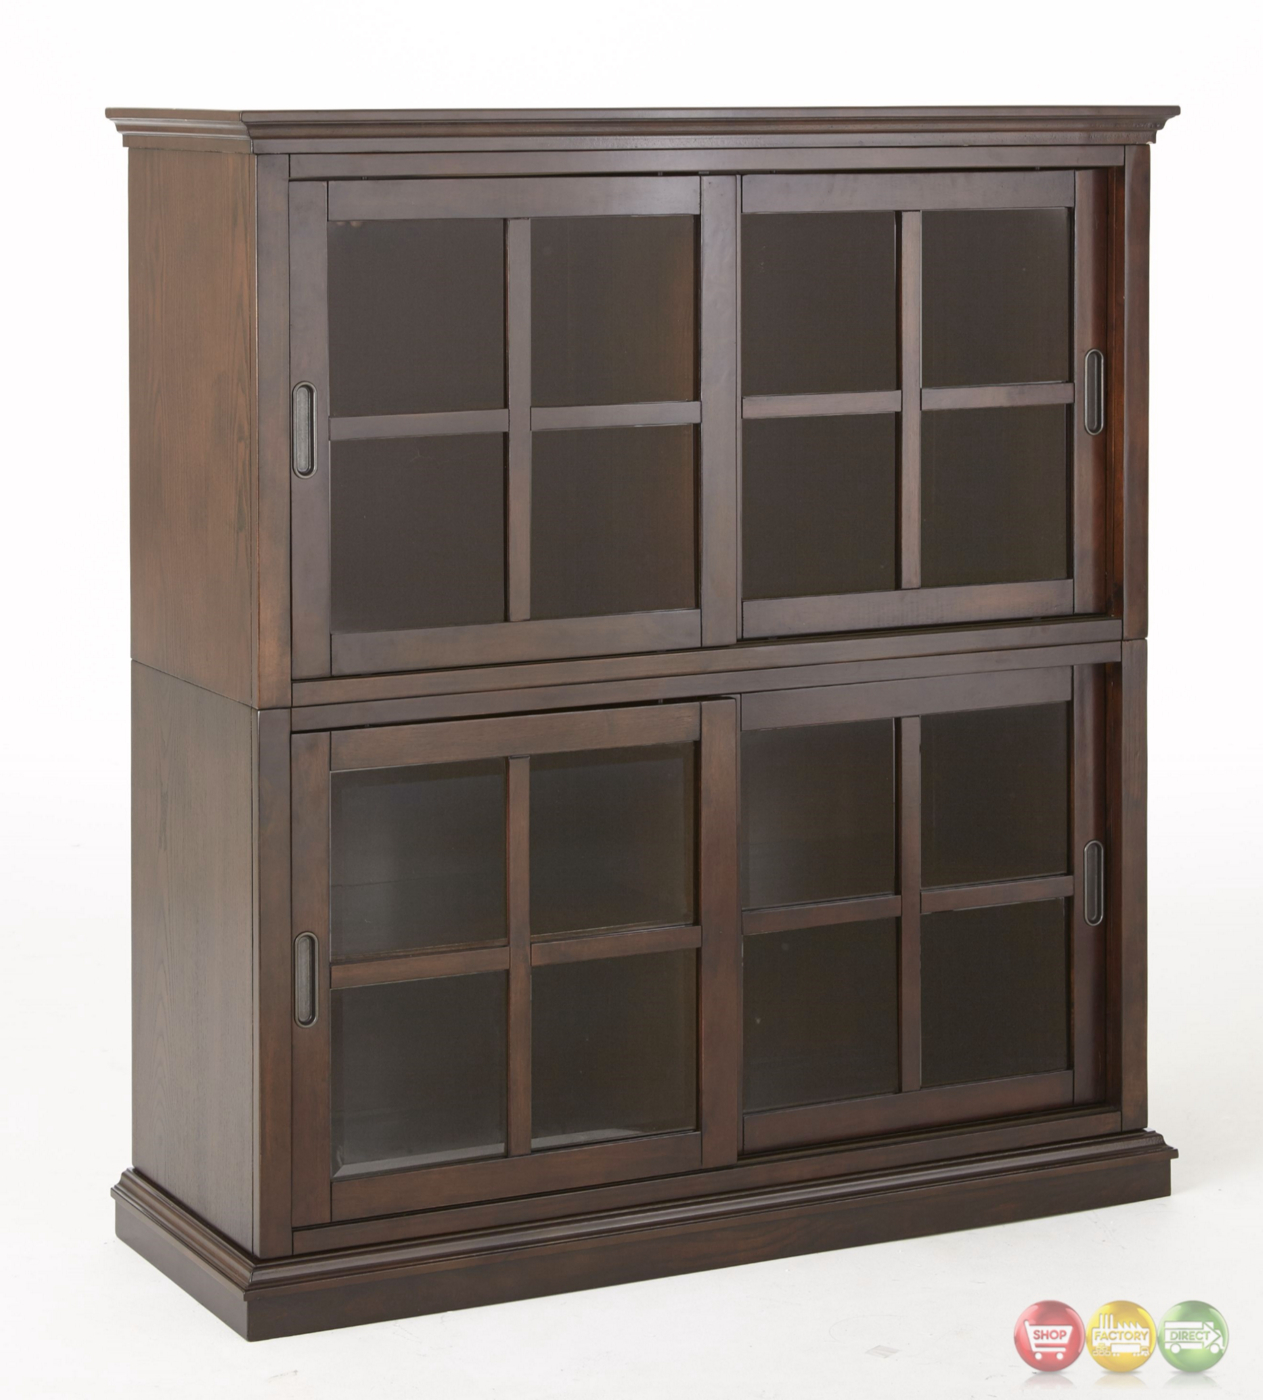 Tenton Stackable Closed Bookcase With Sliding Doors In ...